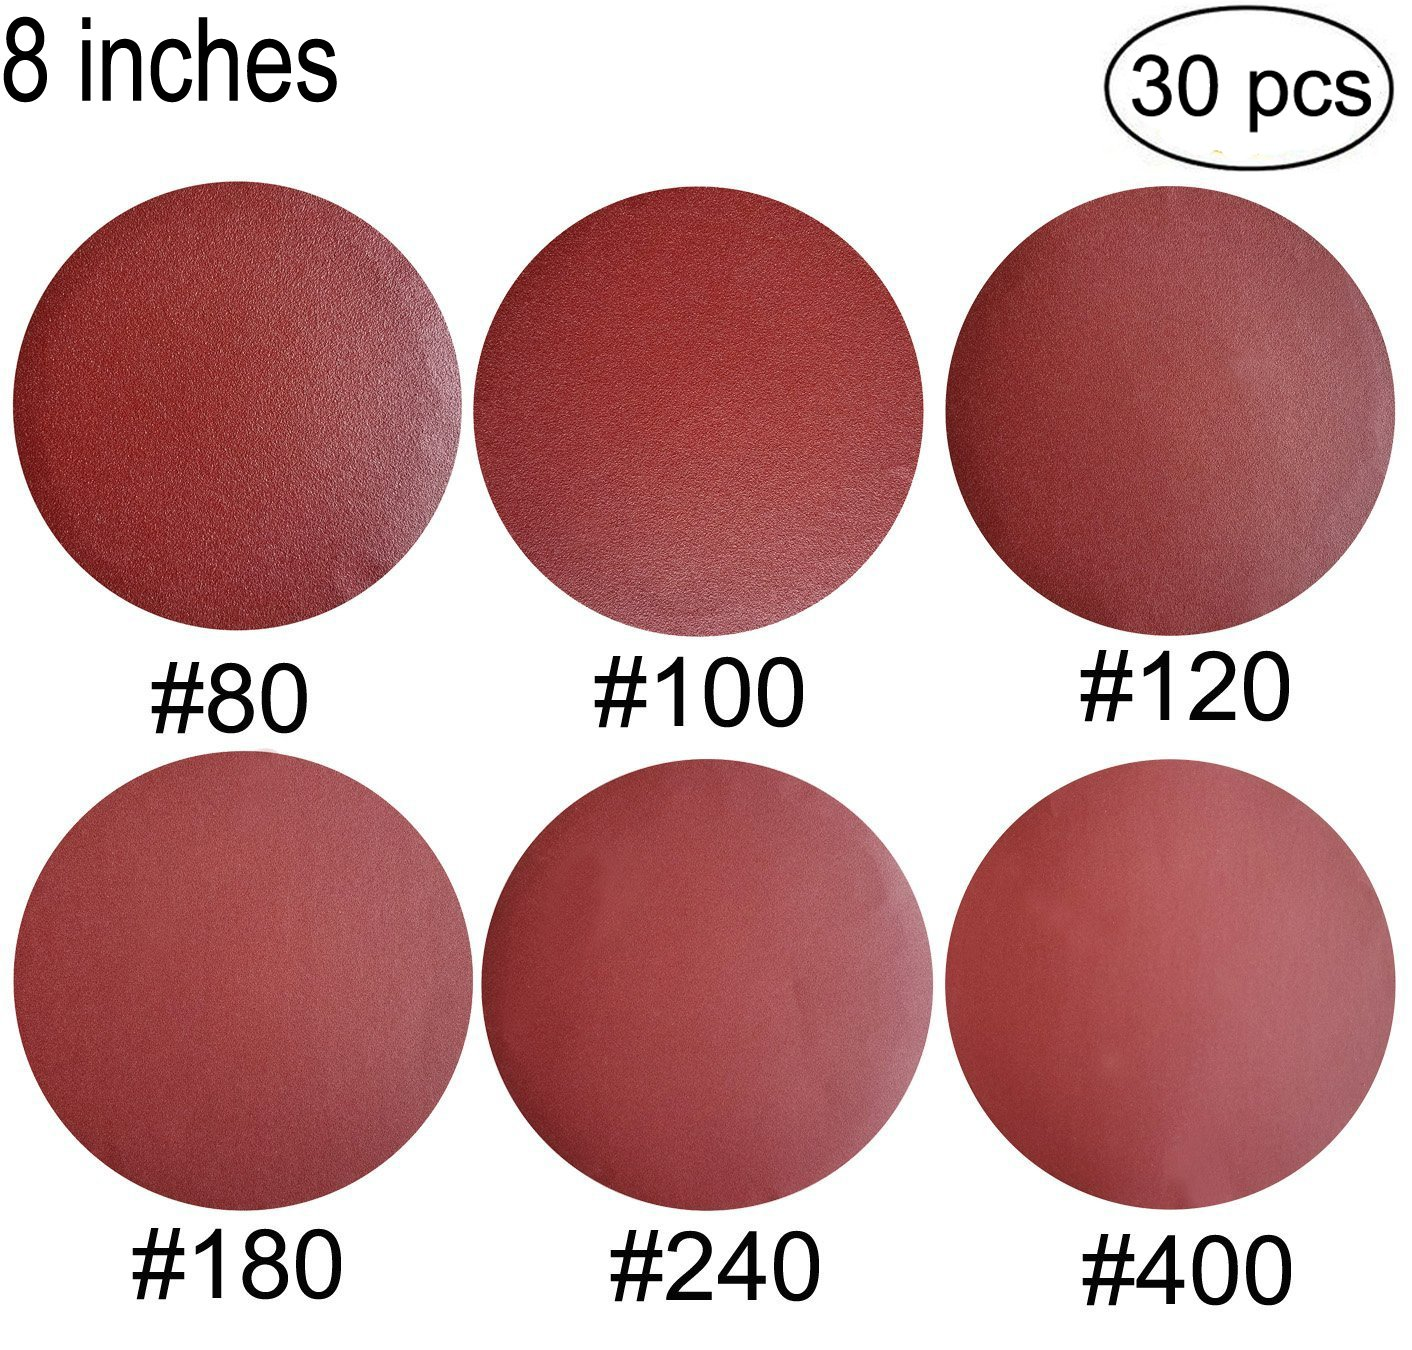 30 PCS 8-Inch NO-Hole PSA Aluminum Oxide Sanding Disc, Self Stick(5 Each of 80 100 120 180 240 400) by SINYUM